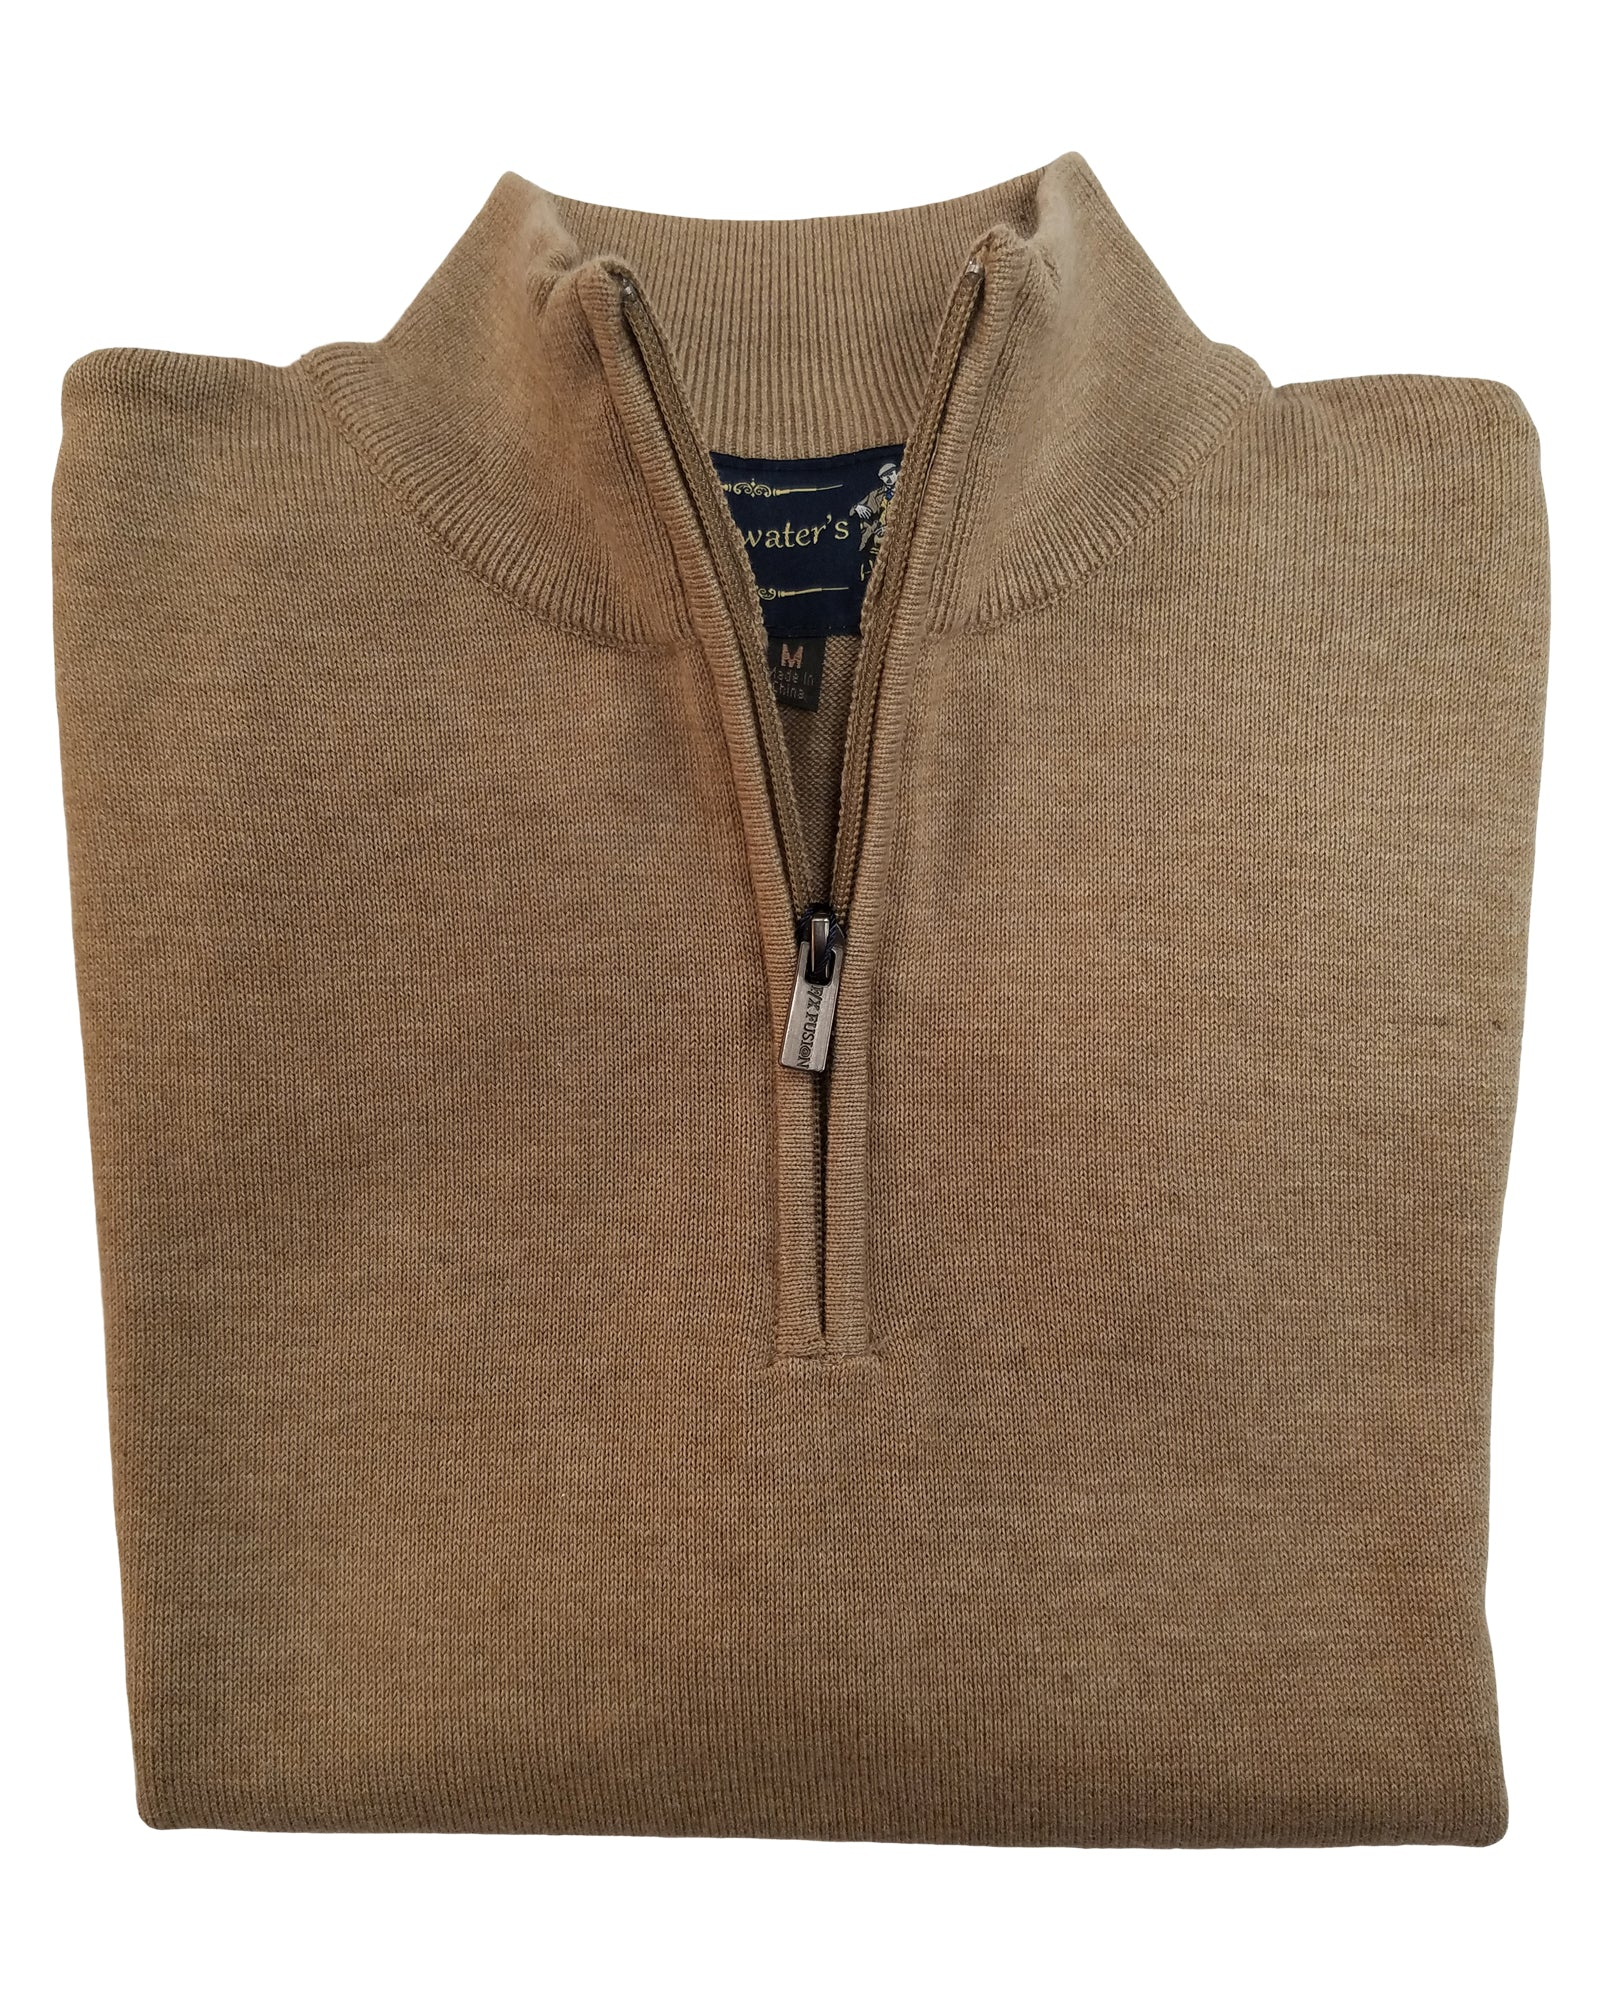 1/4 Zip Mock Sweater Vest in Sand Cotton Blend - Rainwater's Men's Clothing and Tuxedo Rental